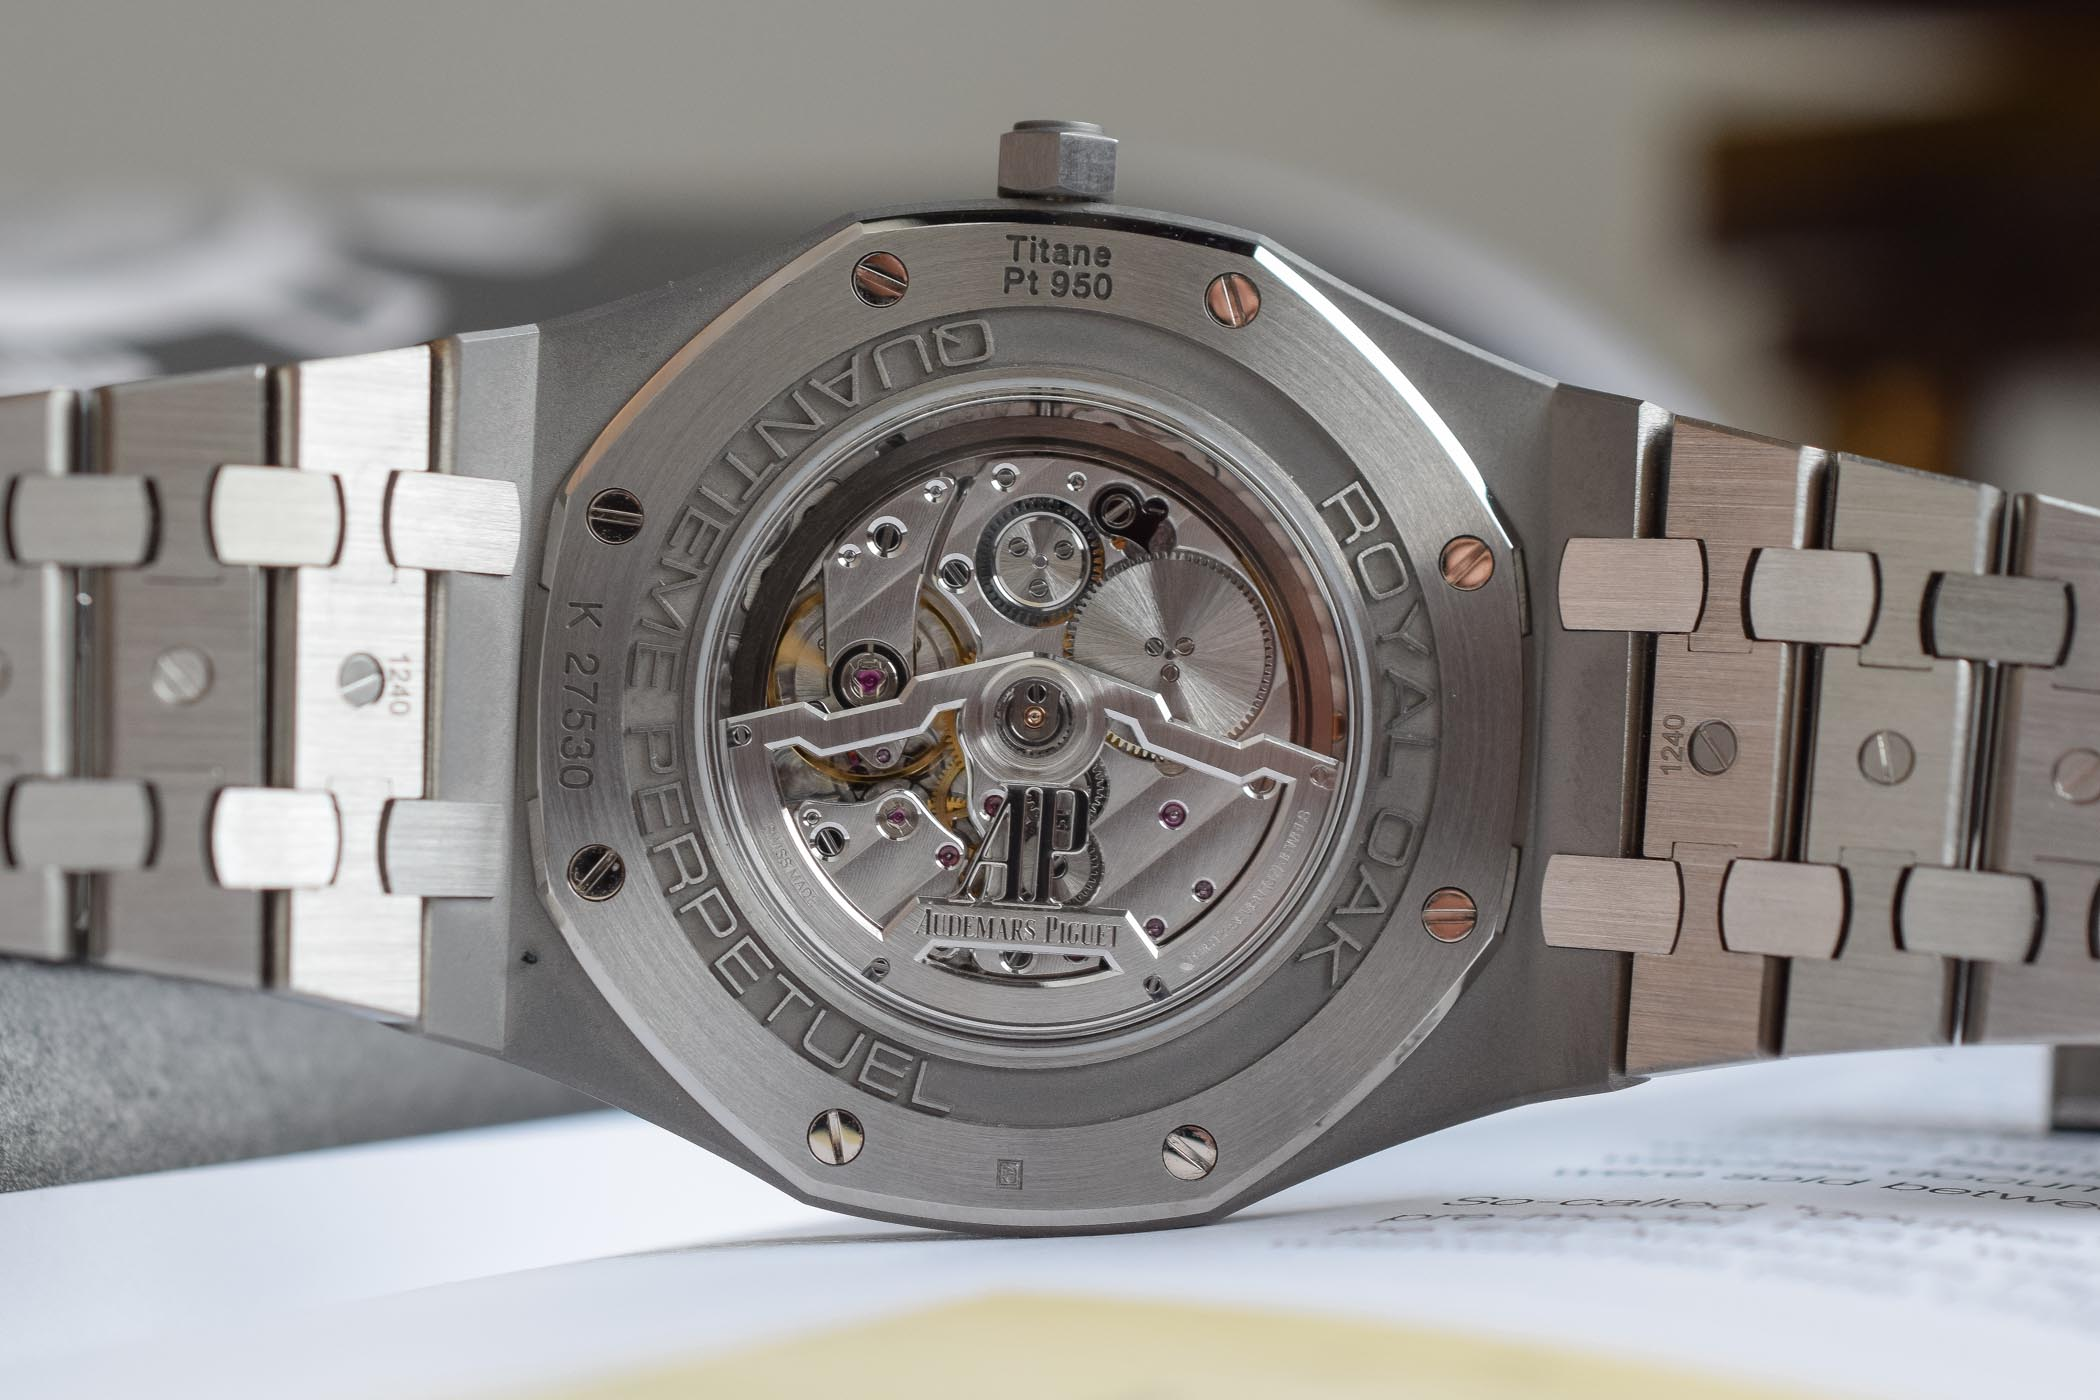 Audemars Piguet Royal Oak Selfwinding Perpetual Calendar Ultra-Thin 26586IP.OO.1240IP.01